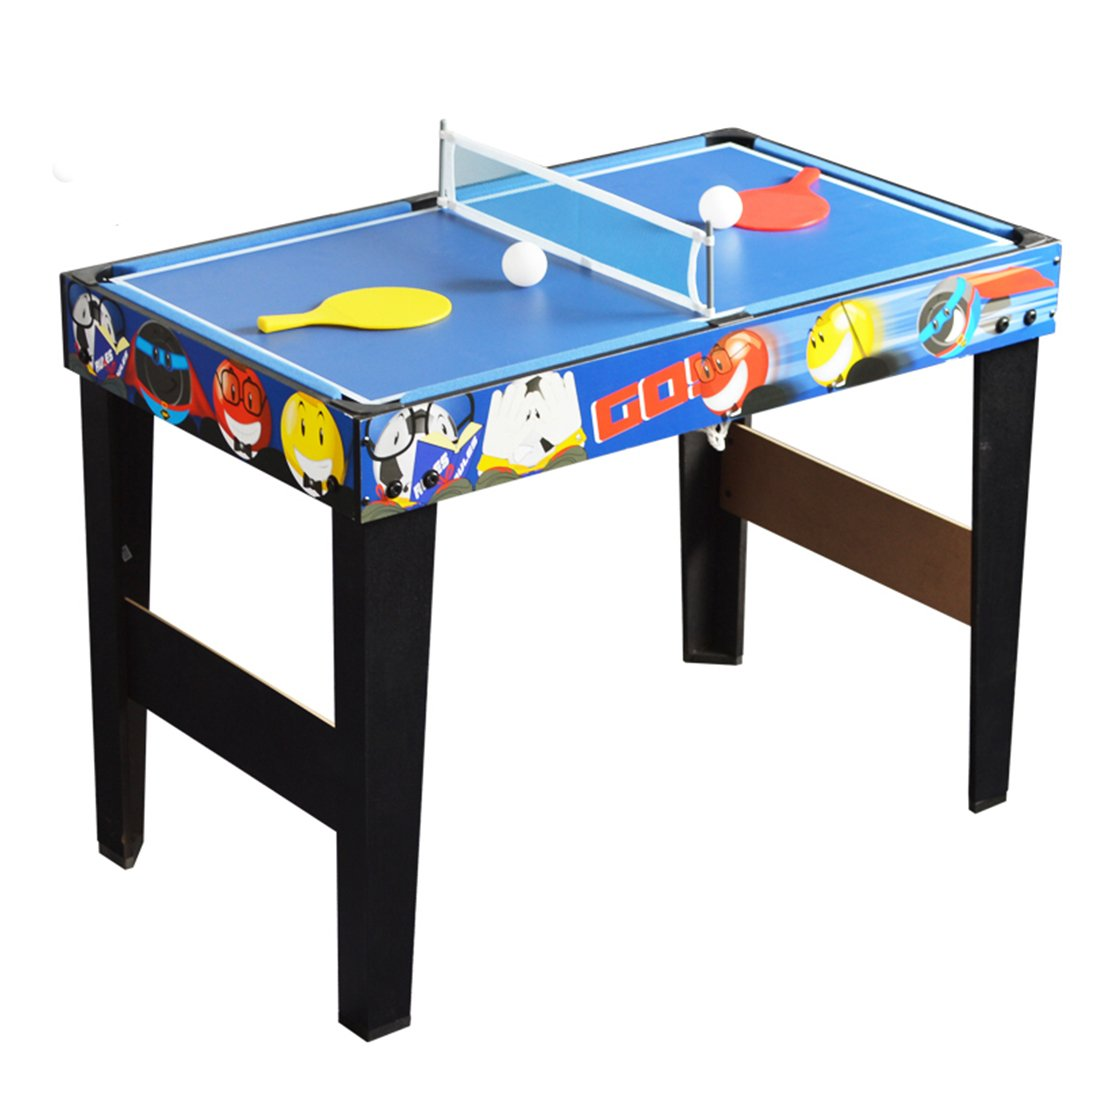 Superbe Amazon.com : Deluxe 48in/4Ft 4 In 1 Top Game Table Multi Function Steady Combo  Table Tennis (Ping Pong ), Glide Hockey, Soccer Foosball, Pool Set For Kids  ...